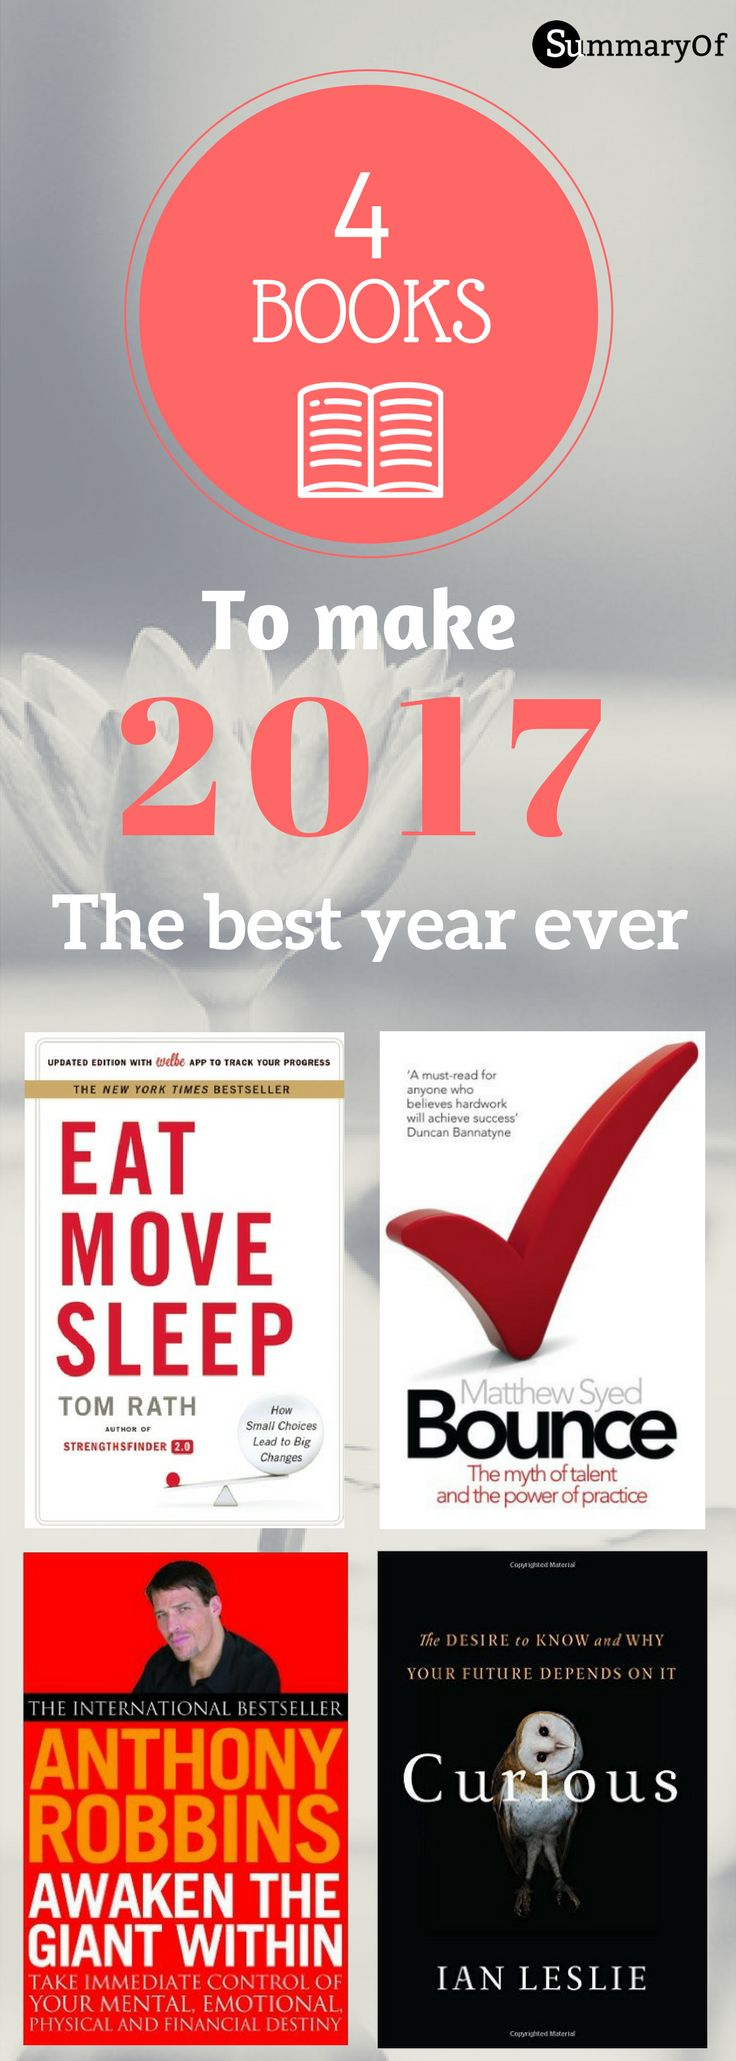 Aspiring to improve your life 2017? These 4 books will give you #lifequality in 4 different aspects. #motivation #inspiration #personalgrowth #selfimprovement